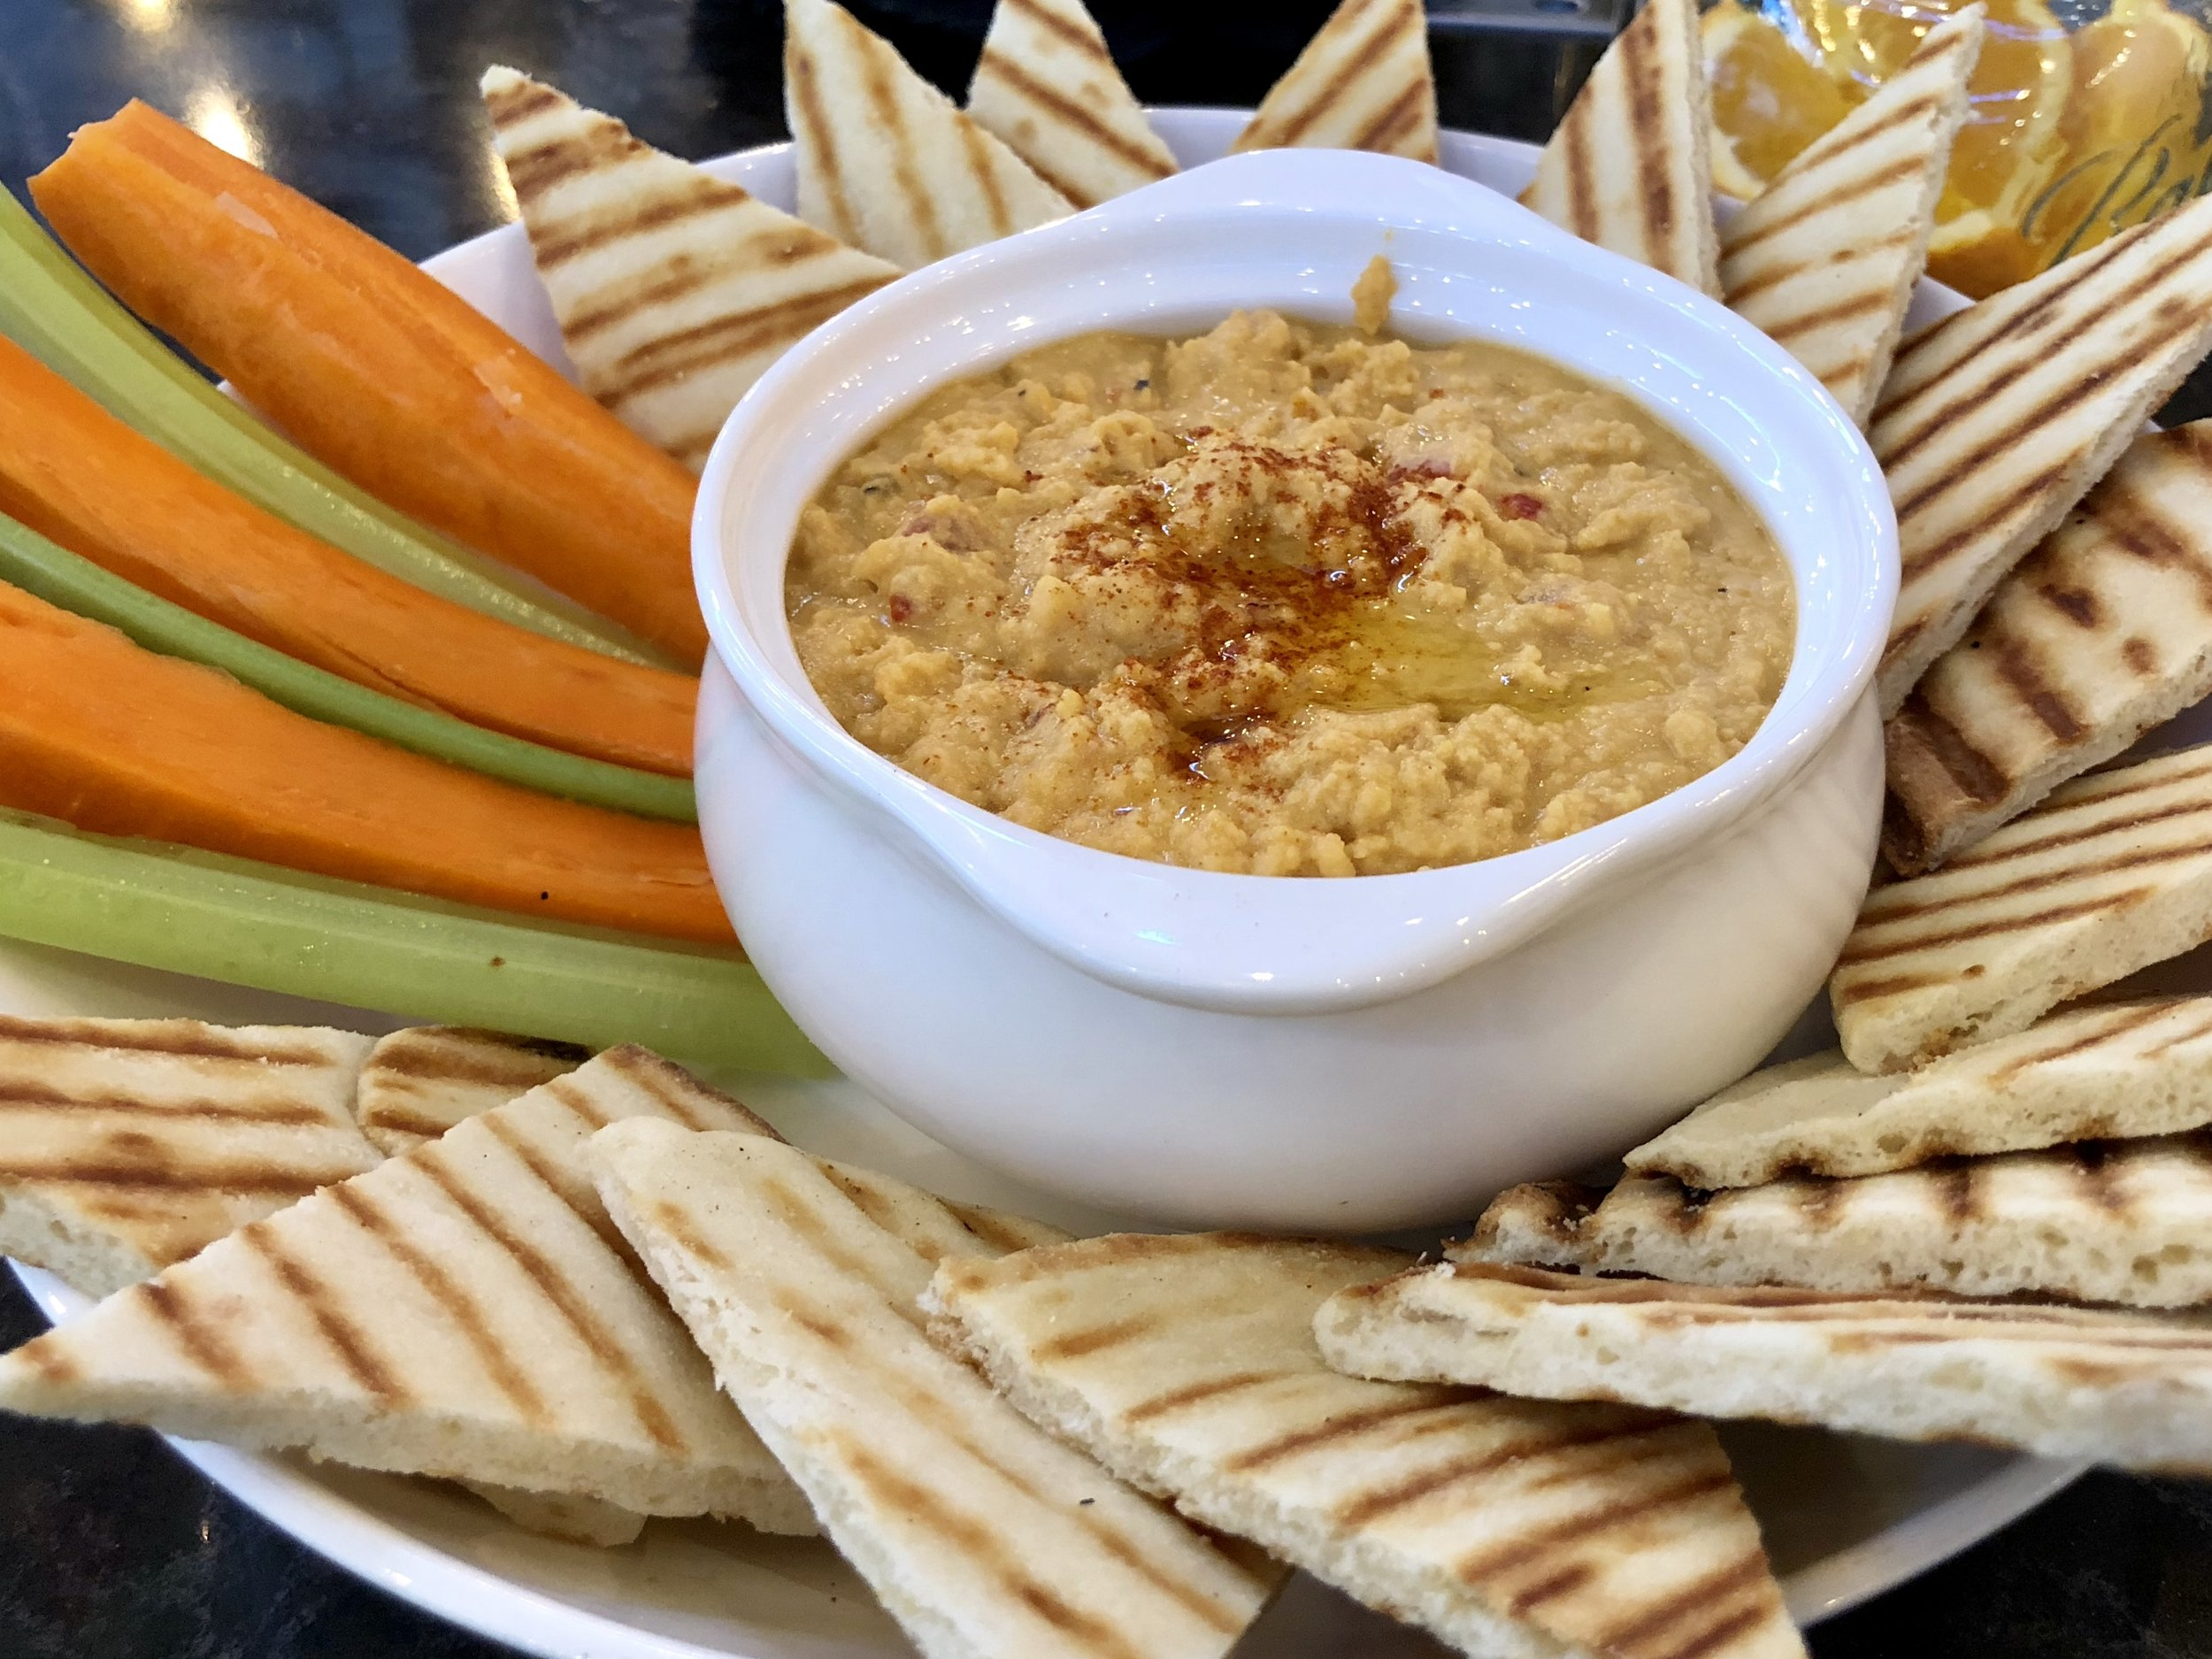 Funny how the simple things are the things you enjoy the most sometimes. This hummus plate with pita bread and veggie sticks was awesome! Photographed well too. :)